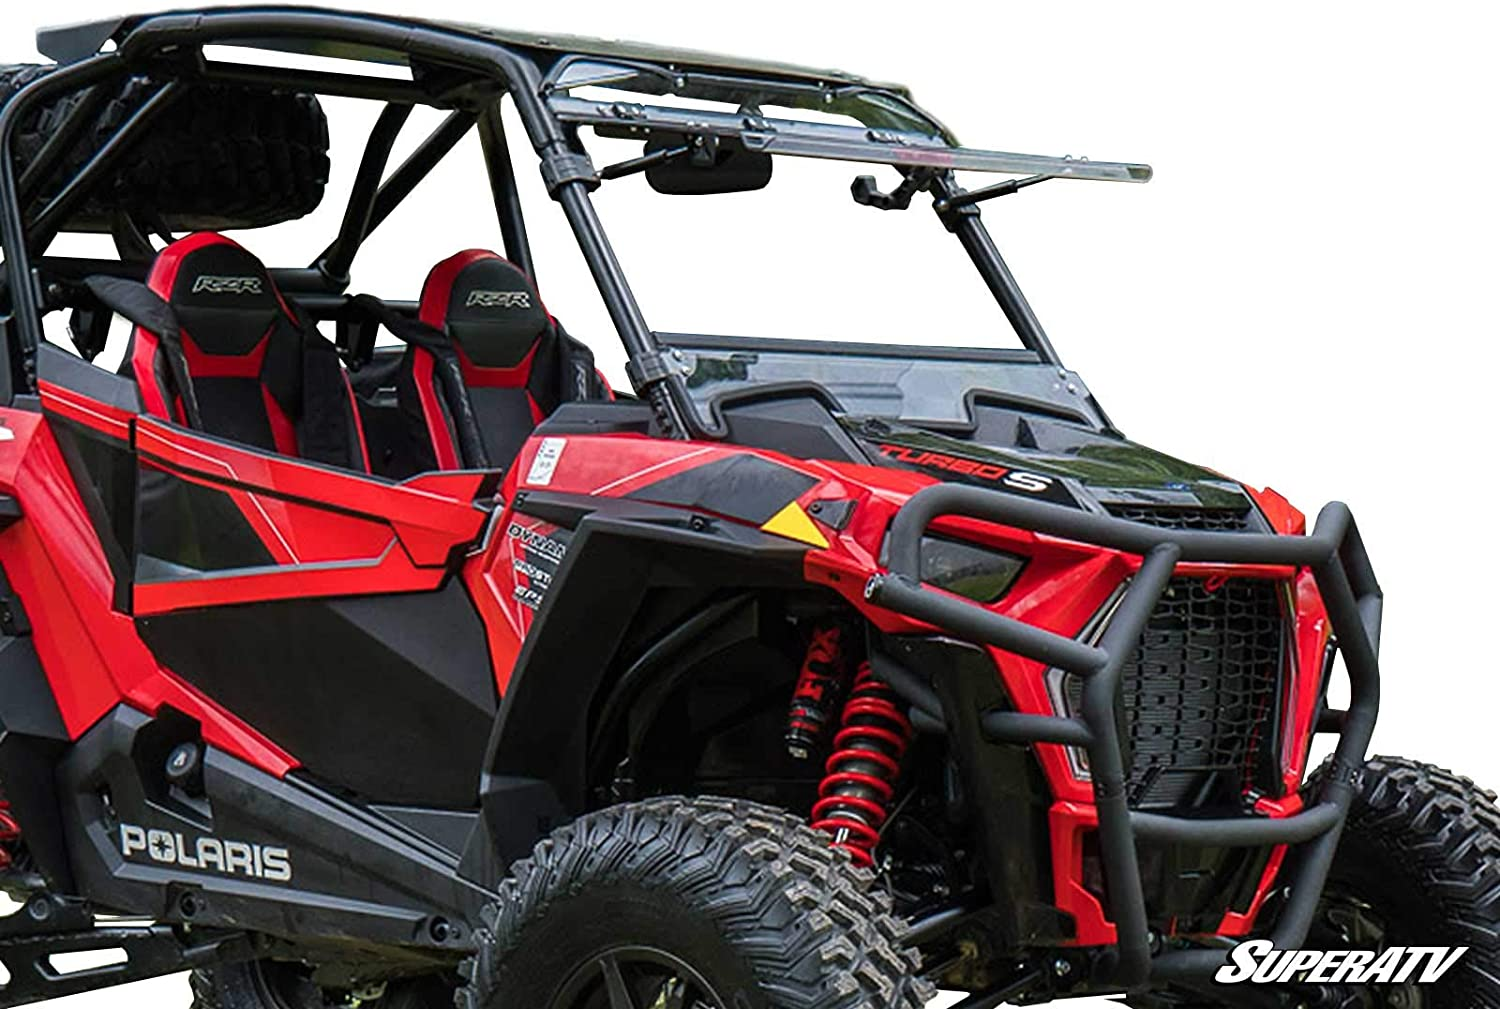 SuperATV Heavy Duty Scratch Resistant 3-IN-1 Flip Windshield for Polaris RZR XP Turbo S (2018+) - Has 3 Different Settings!